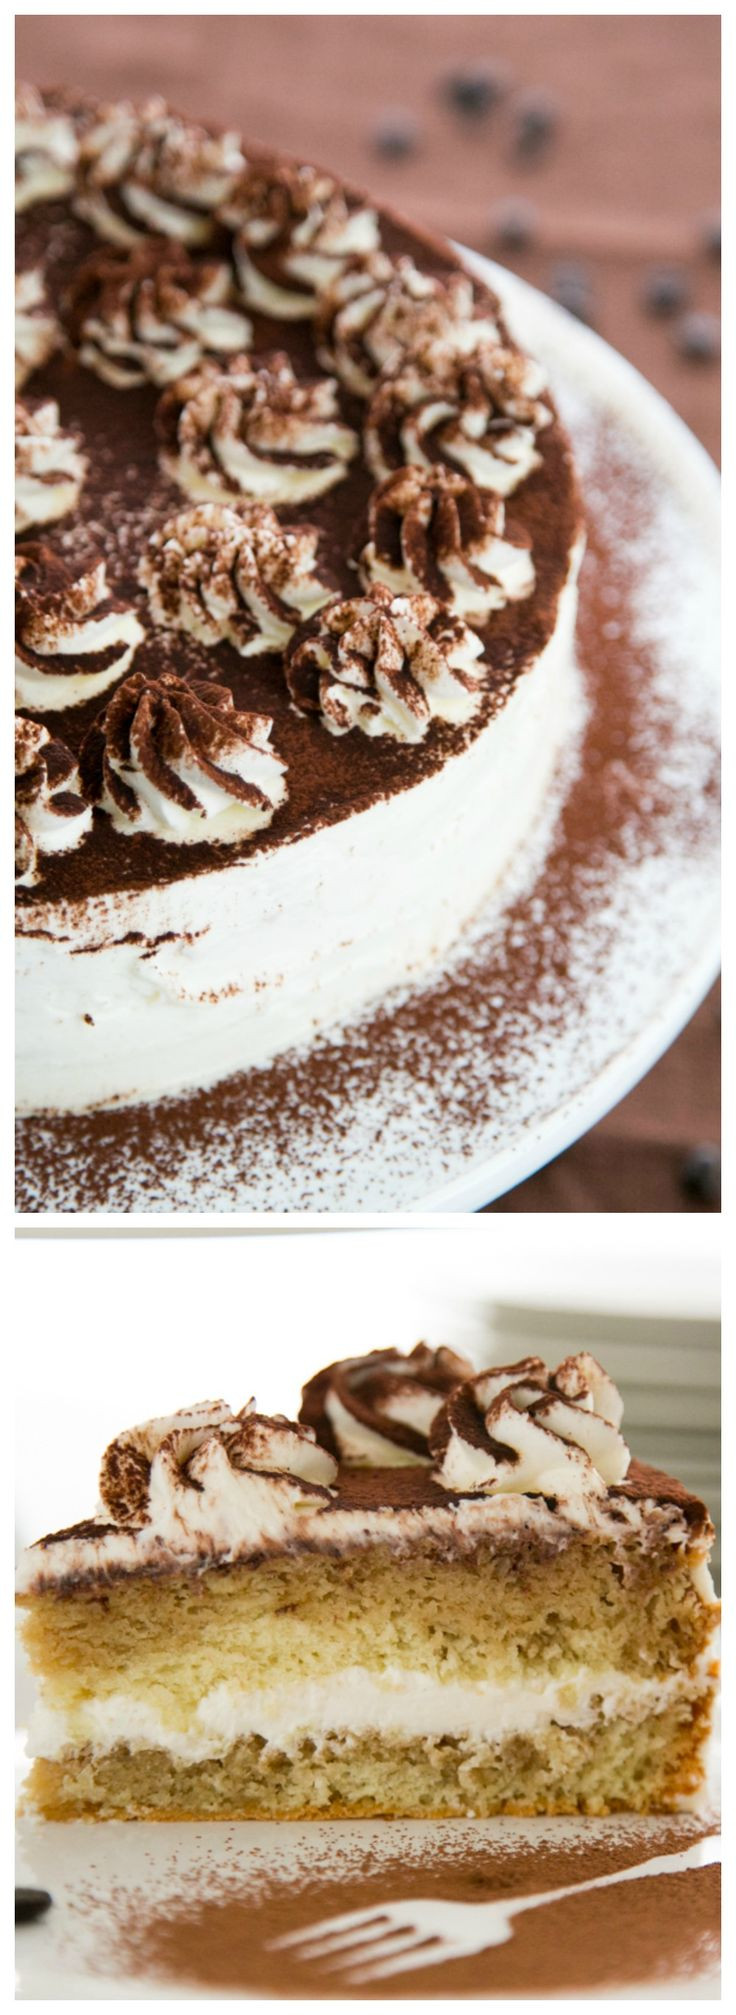 Russian Dessert Recipes  Best 25 Russian desserts ideas on Pinterest